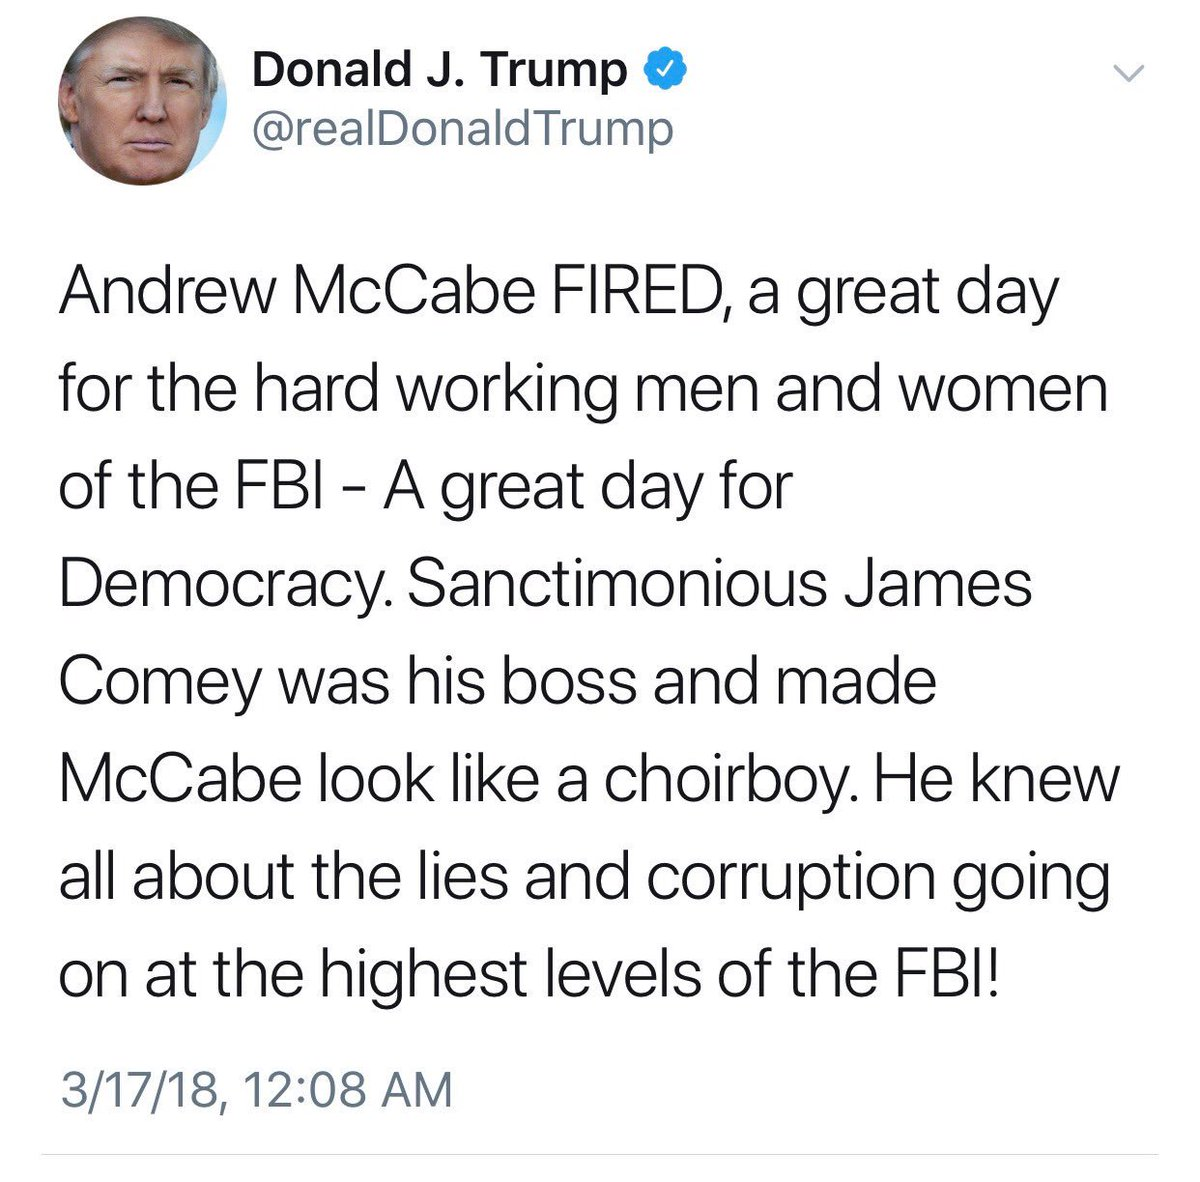 In case there was any doubt of who was behind the McCabe firing. He couldn't even wait until the next morning to take credit.